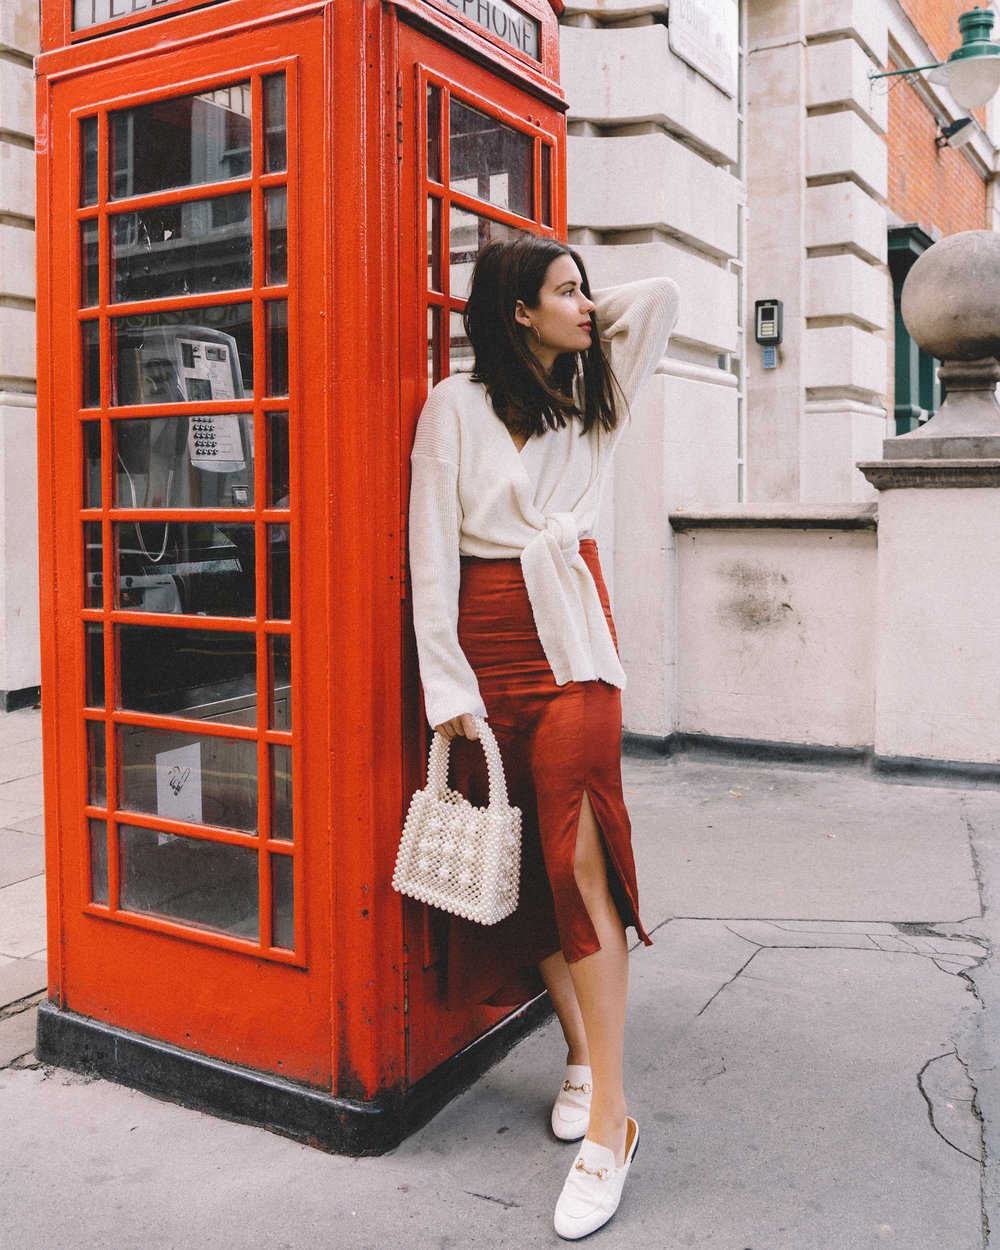 & Other Stories Asymmetric Slit Midi Skirt, Faux Pearl Handbag, Tied knot front Sweater london streetstyle outfit10.jpg